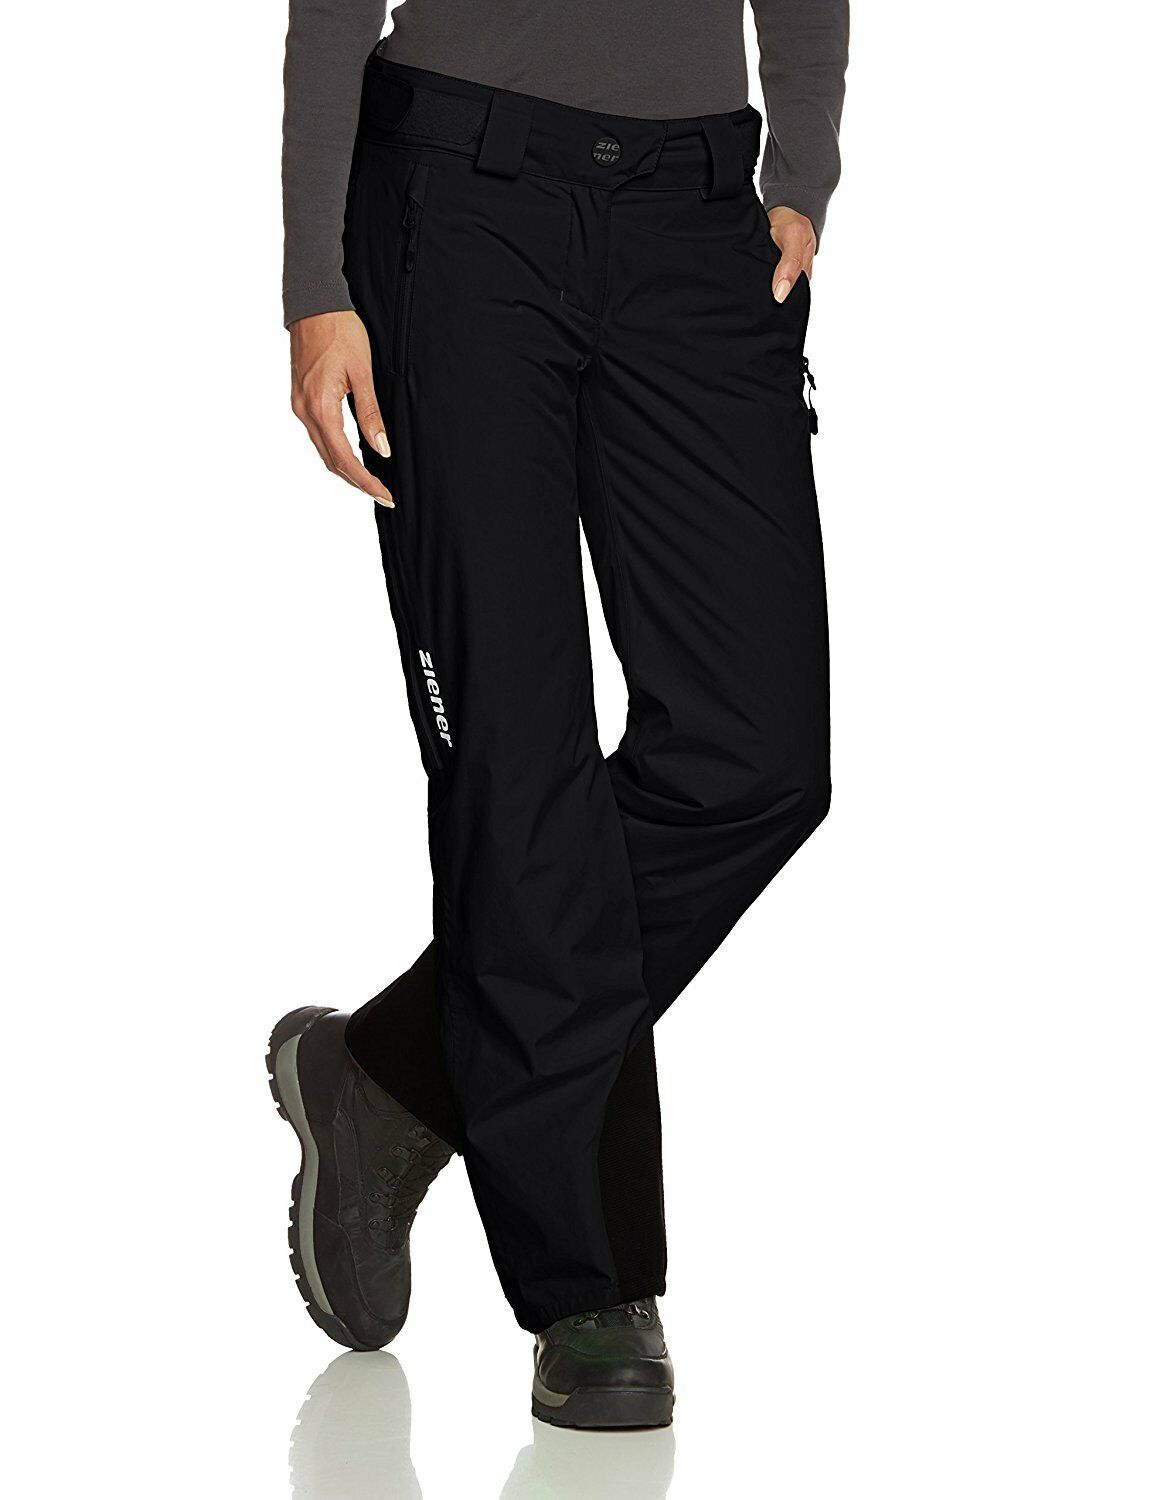 Ziener RANA Women's Goretex skiing  pants    Size 18 BNWT  large selection